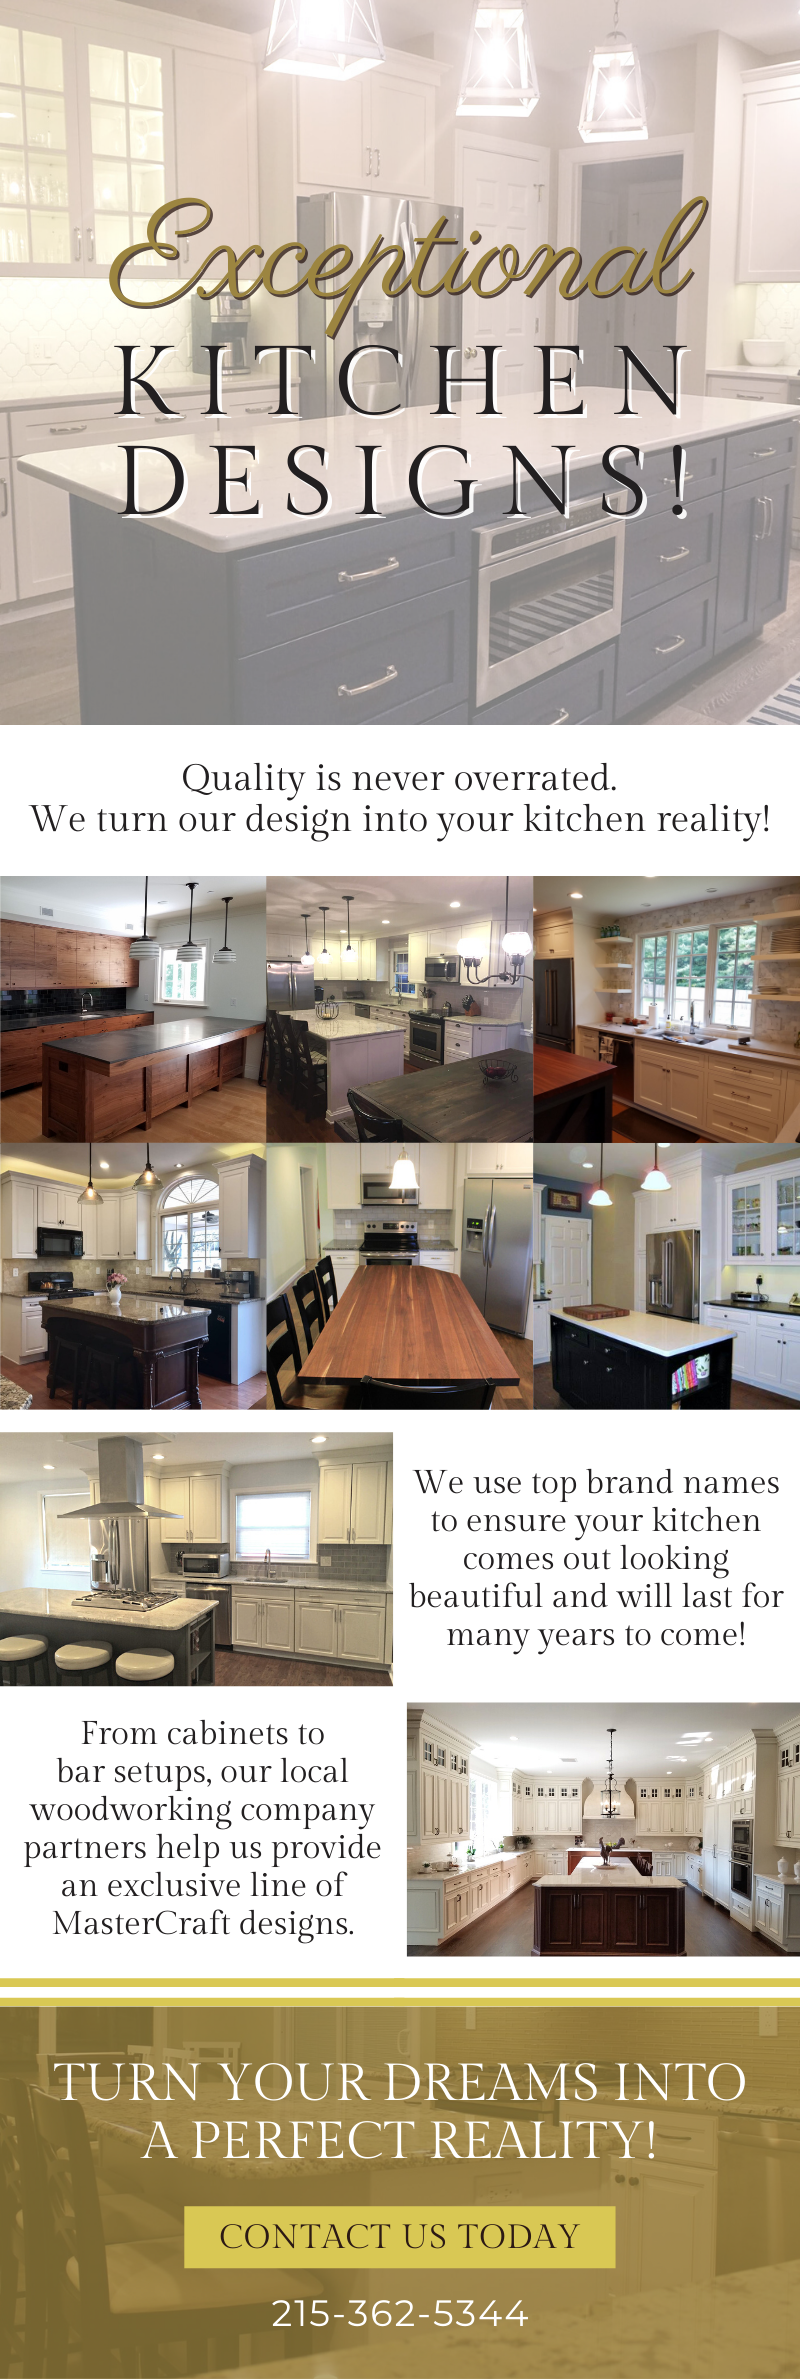 Exceptional Quality Kitchens! 3